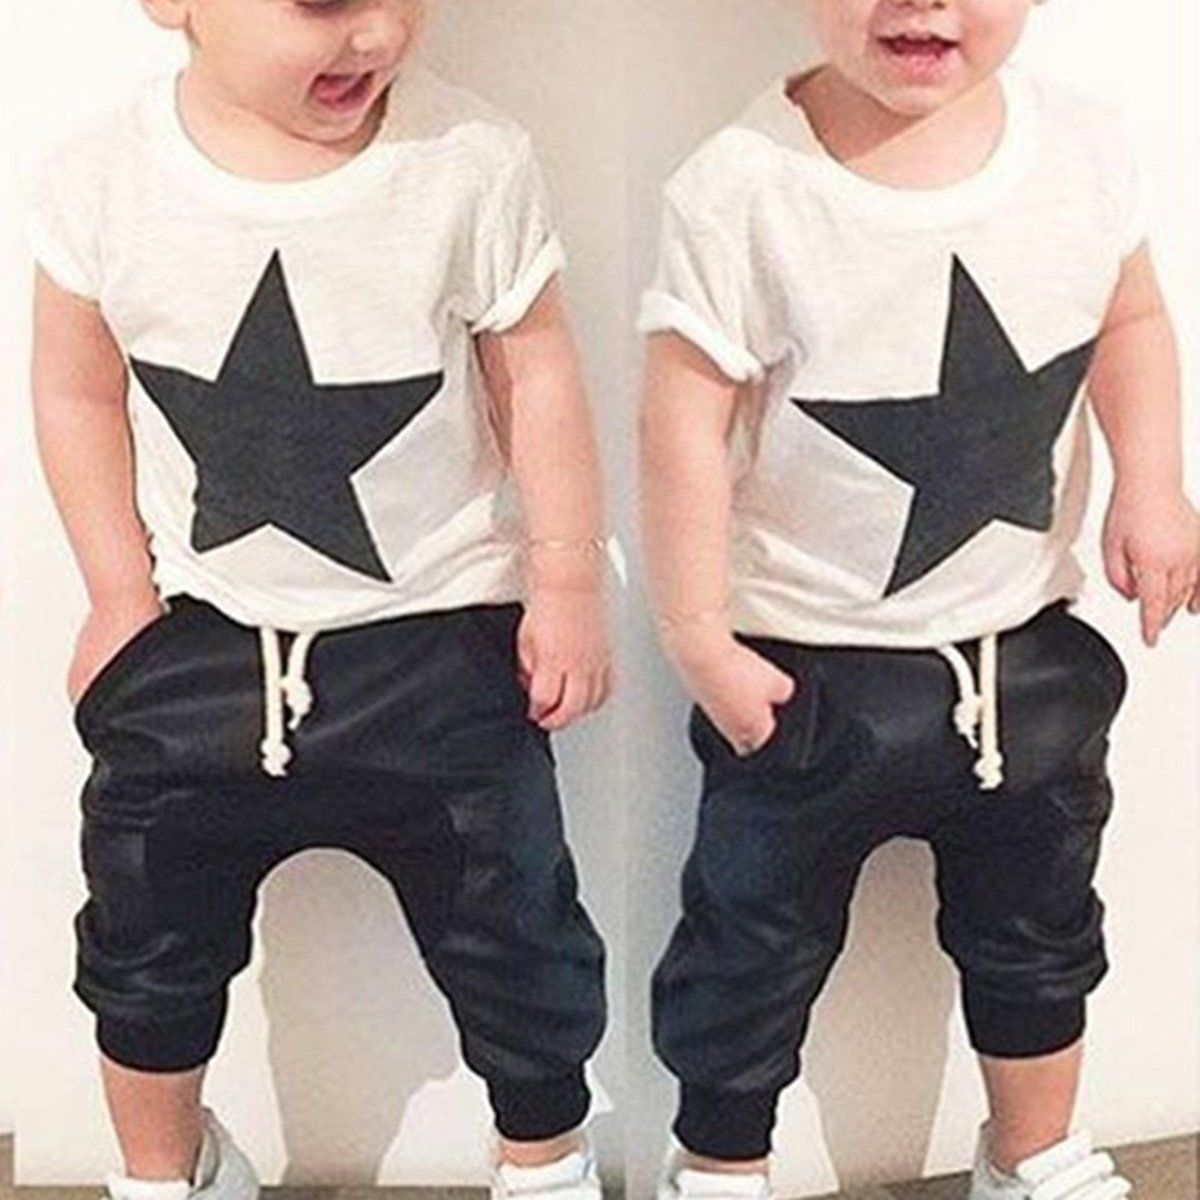 2 Pcs Casual Summer Toddler Infant Kid Newborn Baby Boys Star T Shirt Clothes T Shirts Tops Drawstring Pants Suit Outfits Set number series no 5 print toddler boy shirts 2016 baby boys t shirt brand designer t shirt summer boys clothes children s tops